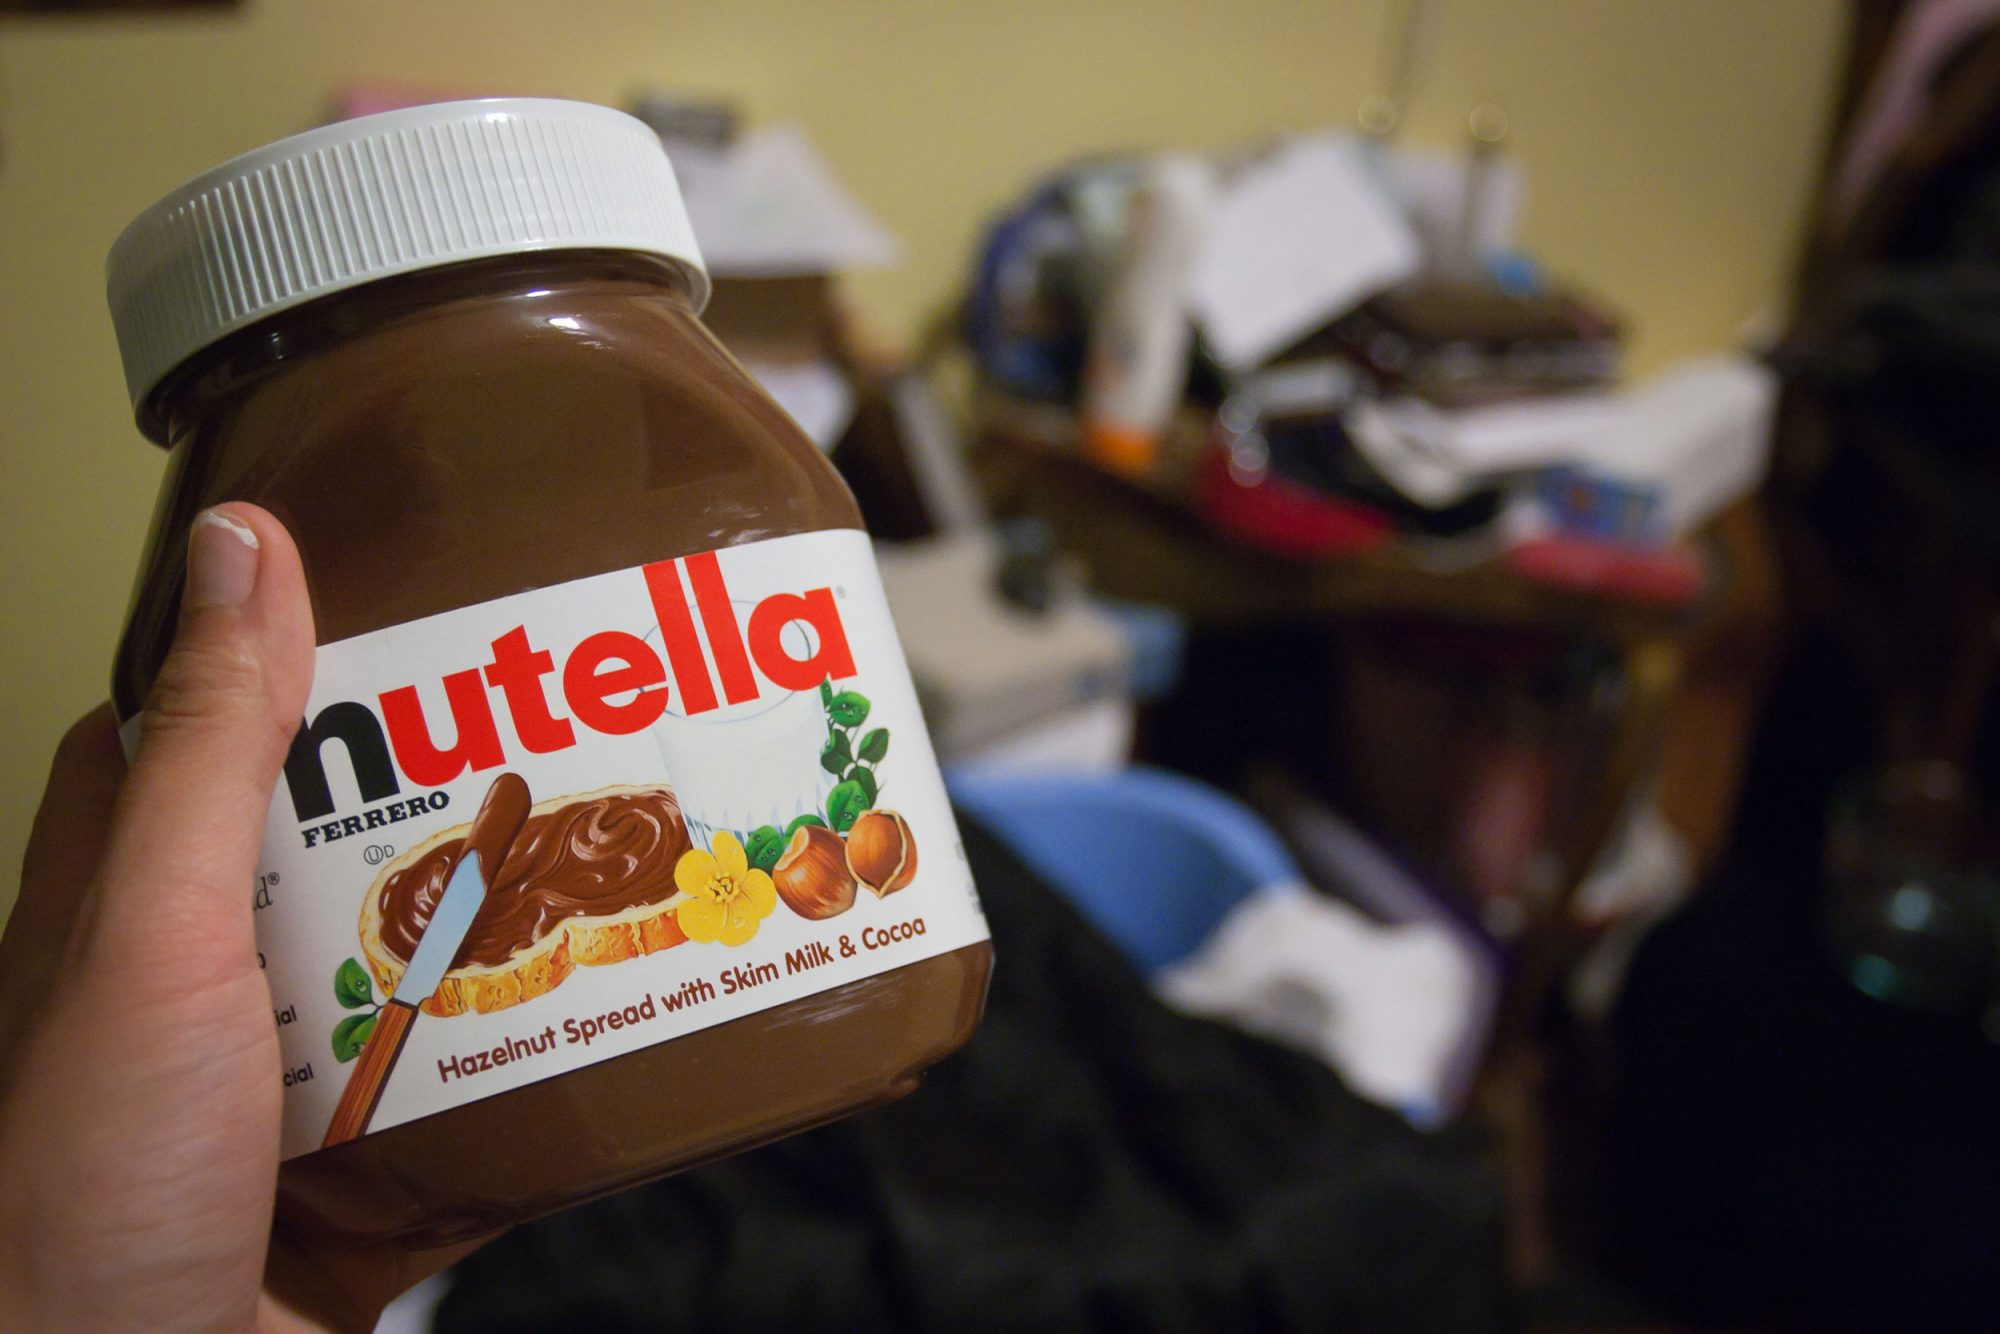 EC: Nutella Is Trying to Get Categorized as a Jam